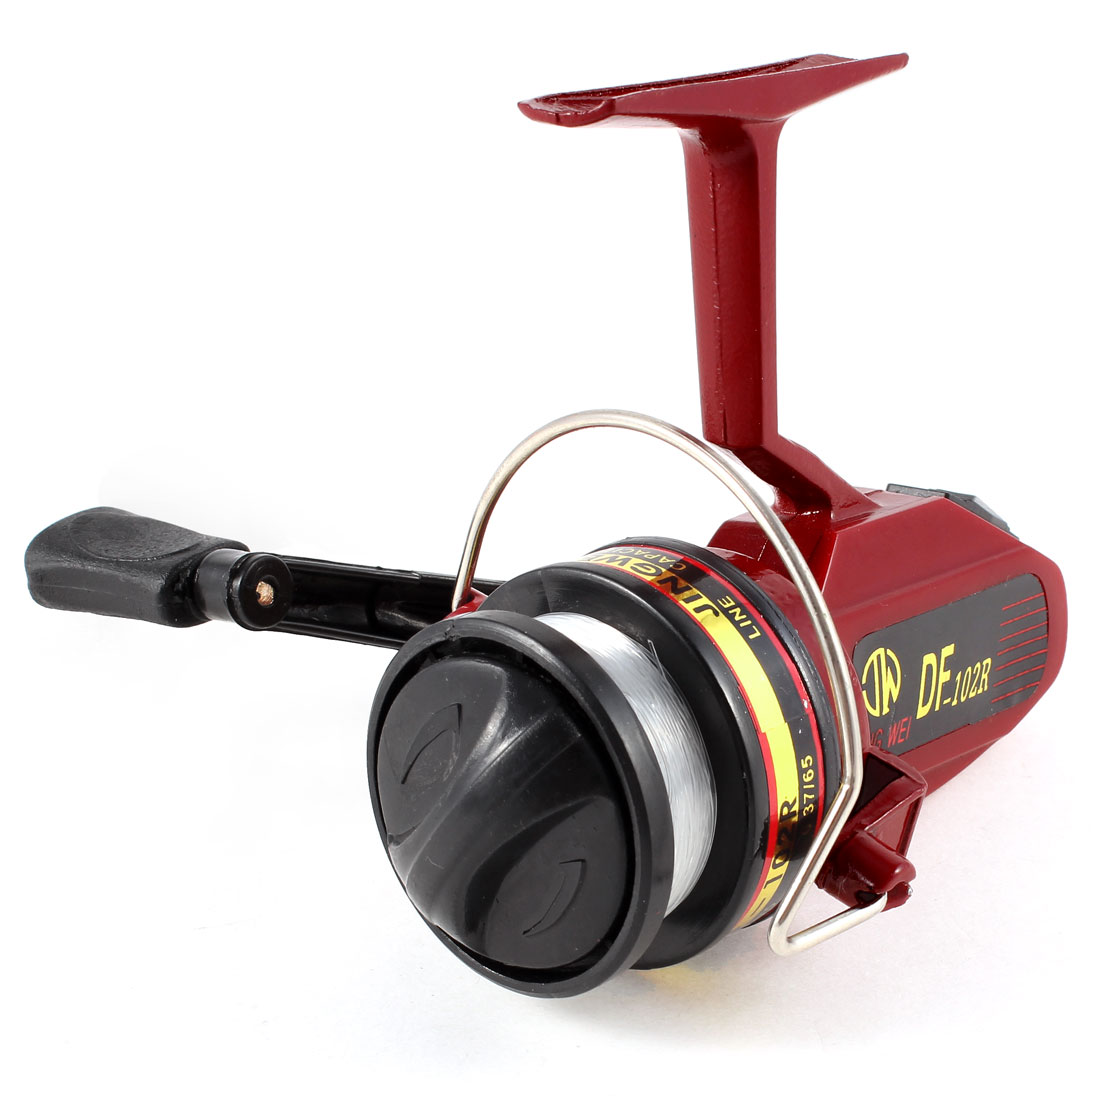 Red Black 5.0:1 Gear Ratio 3 Ball Bearings Fishing Spinning Reel Spool